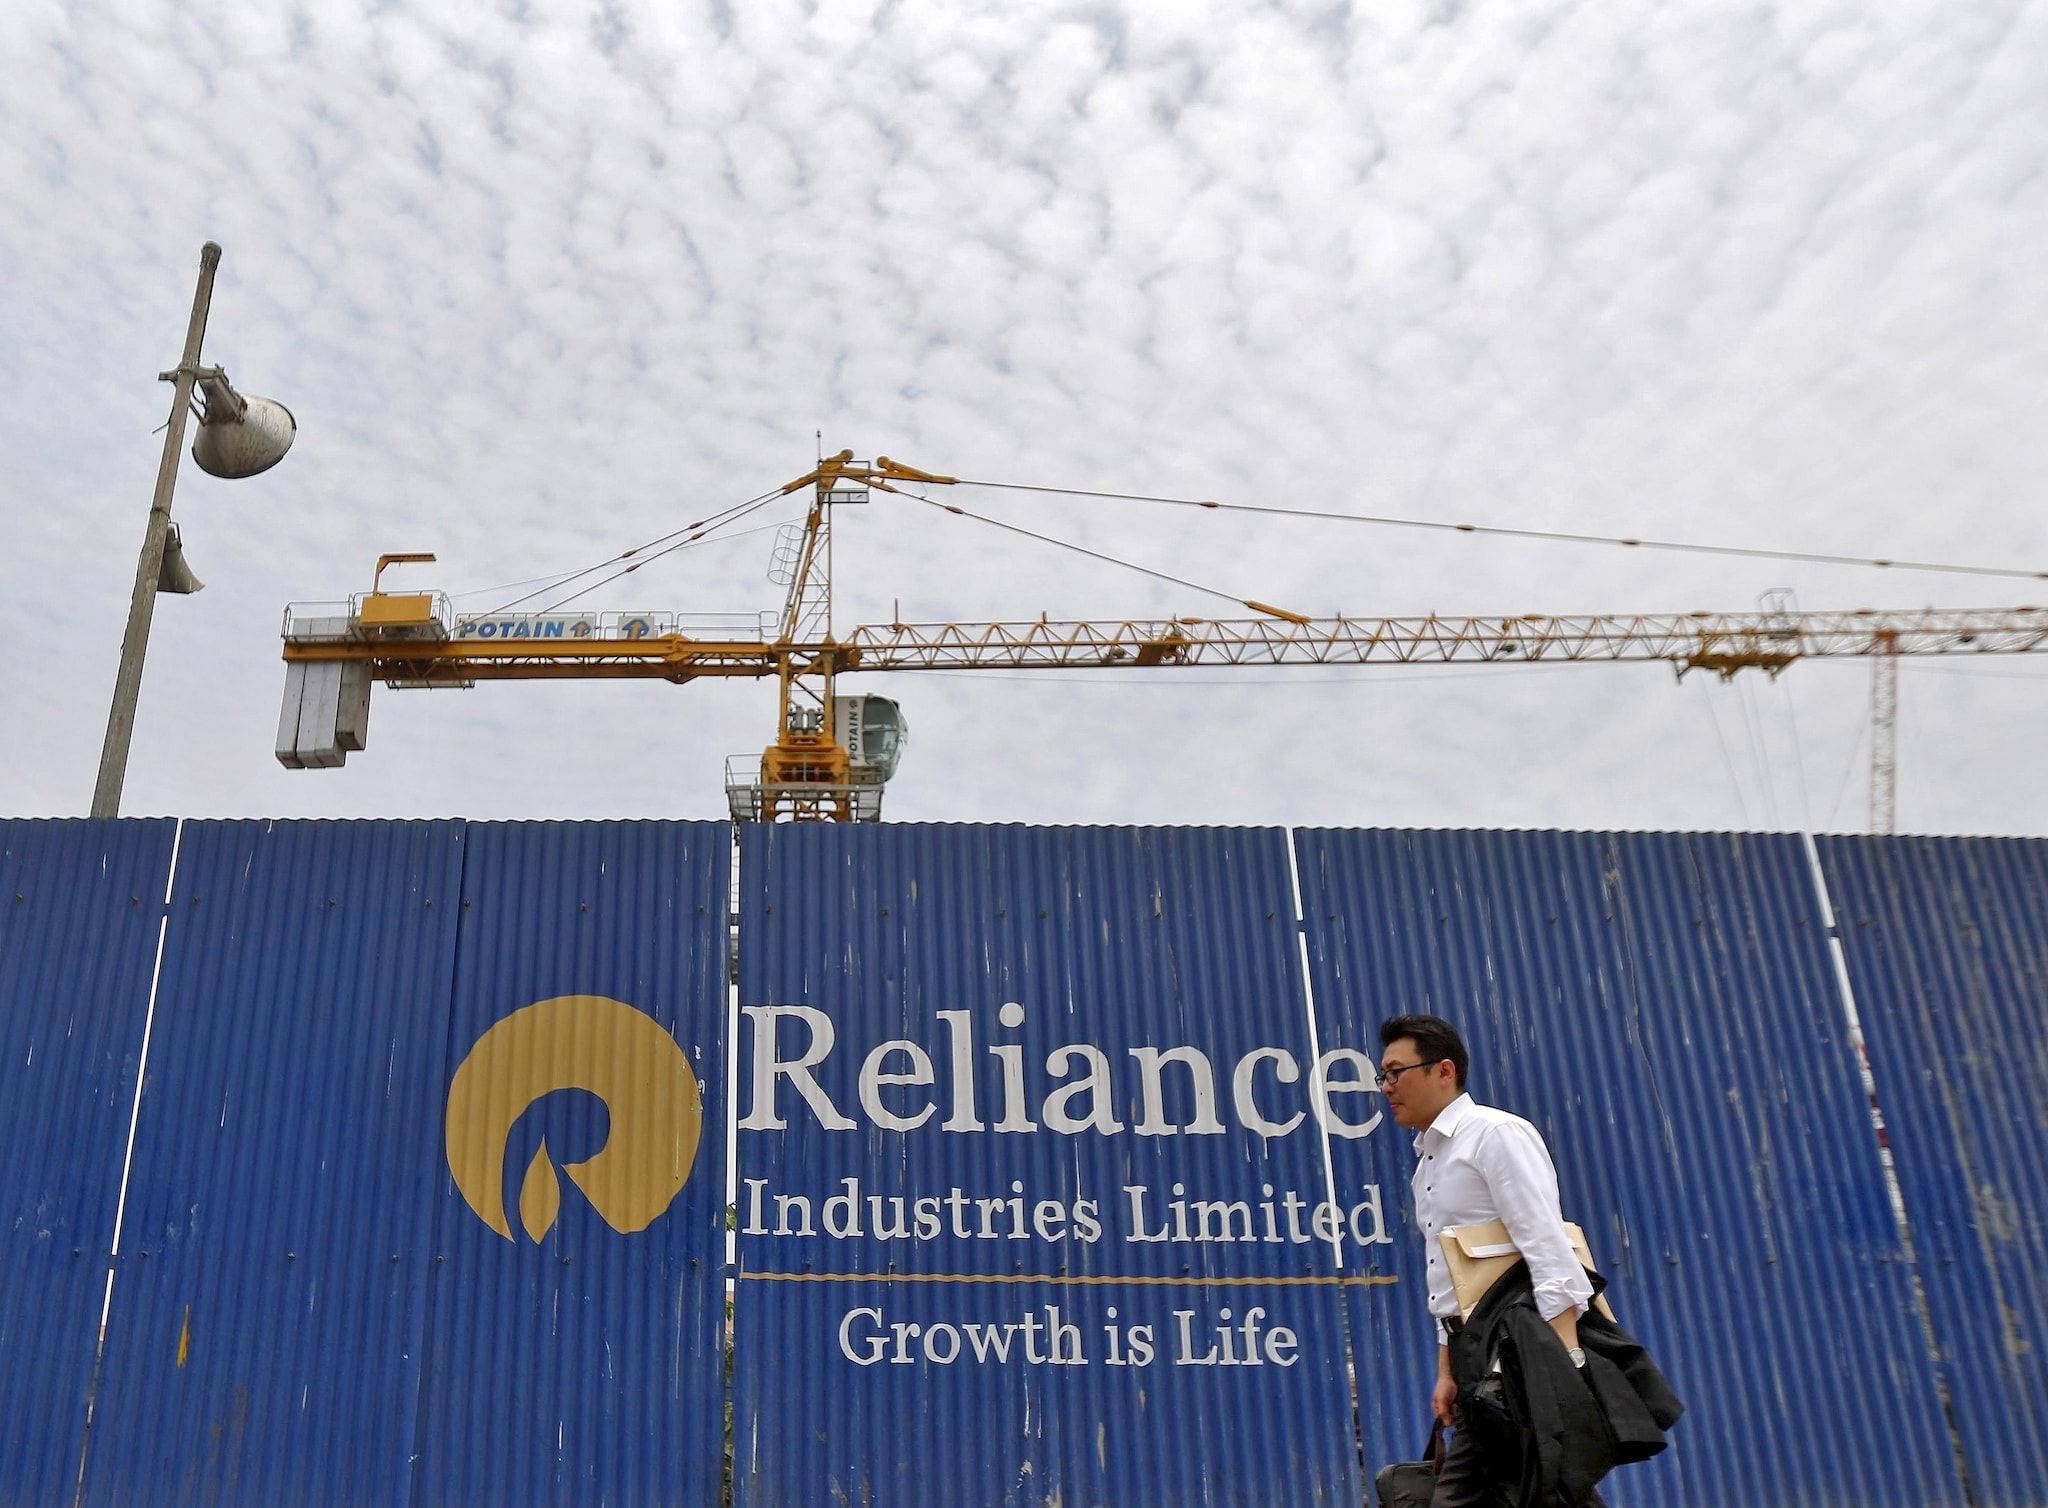 2. RIL: Subsidiary Reliance Industrial Investments and Holdings Limited (RIIHL) entered into agreement for acquisition of equity shares of software service and data solutions company Surajya Services Private Limited (Easygov) for up to Rs 18 crore. RIIHL will further invest an amount up to Rs 50 crore.  (Image: Reuters)